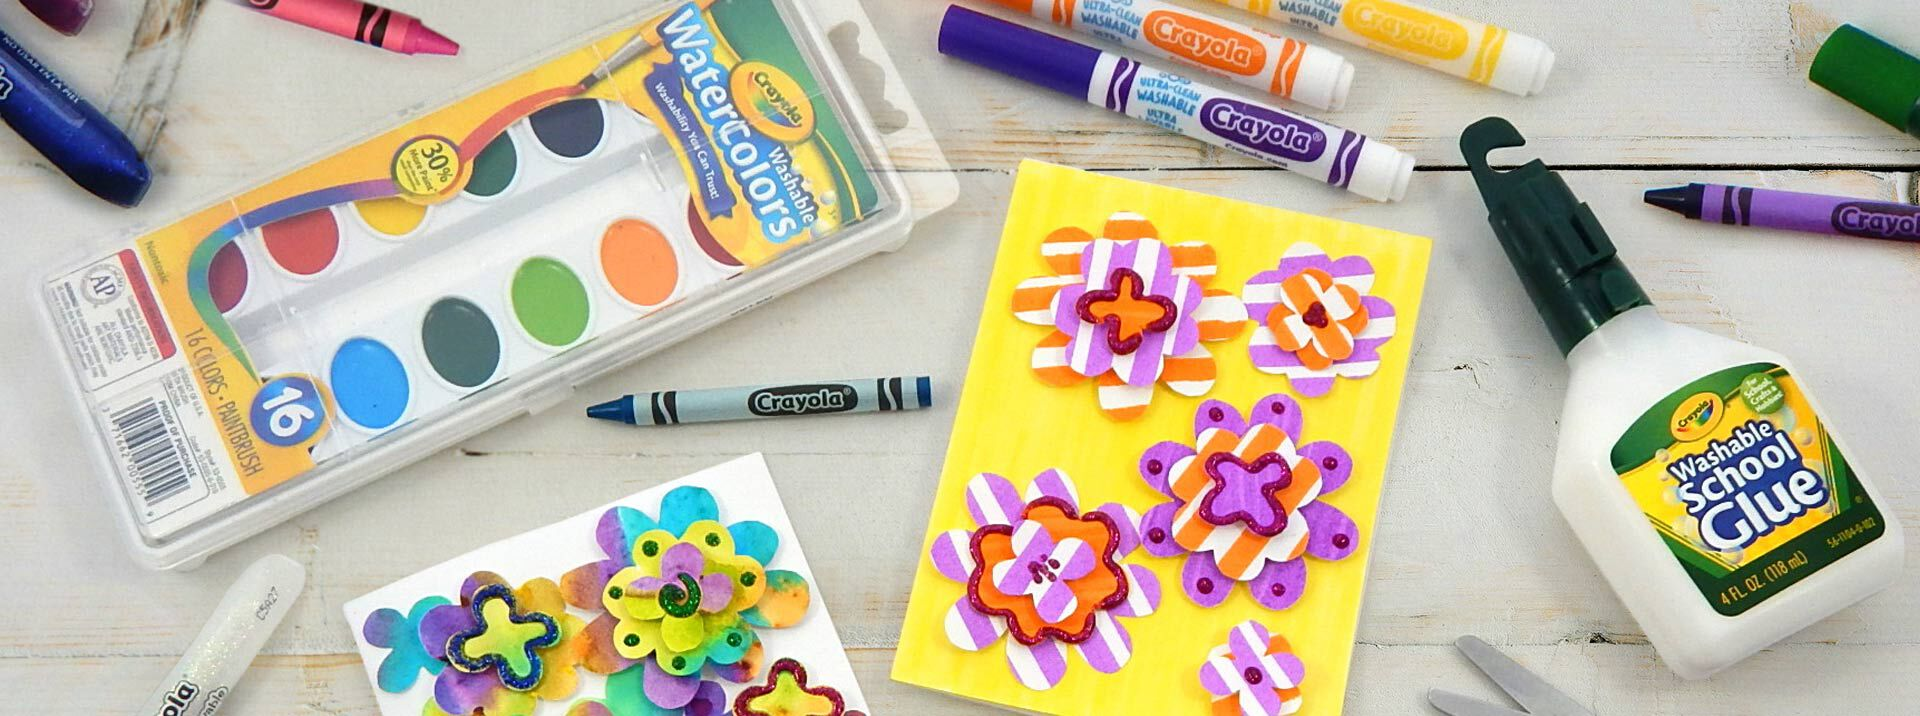 Craft Materials Kits